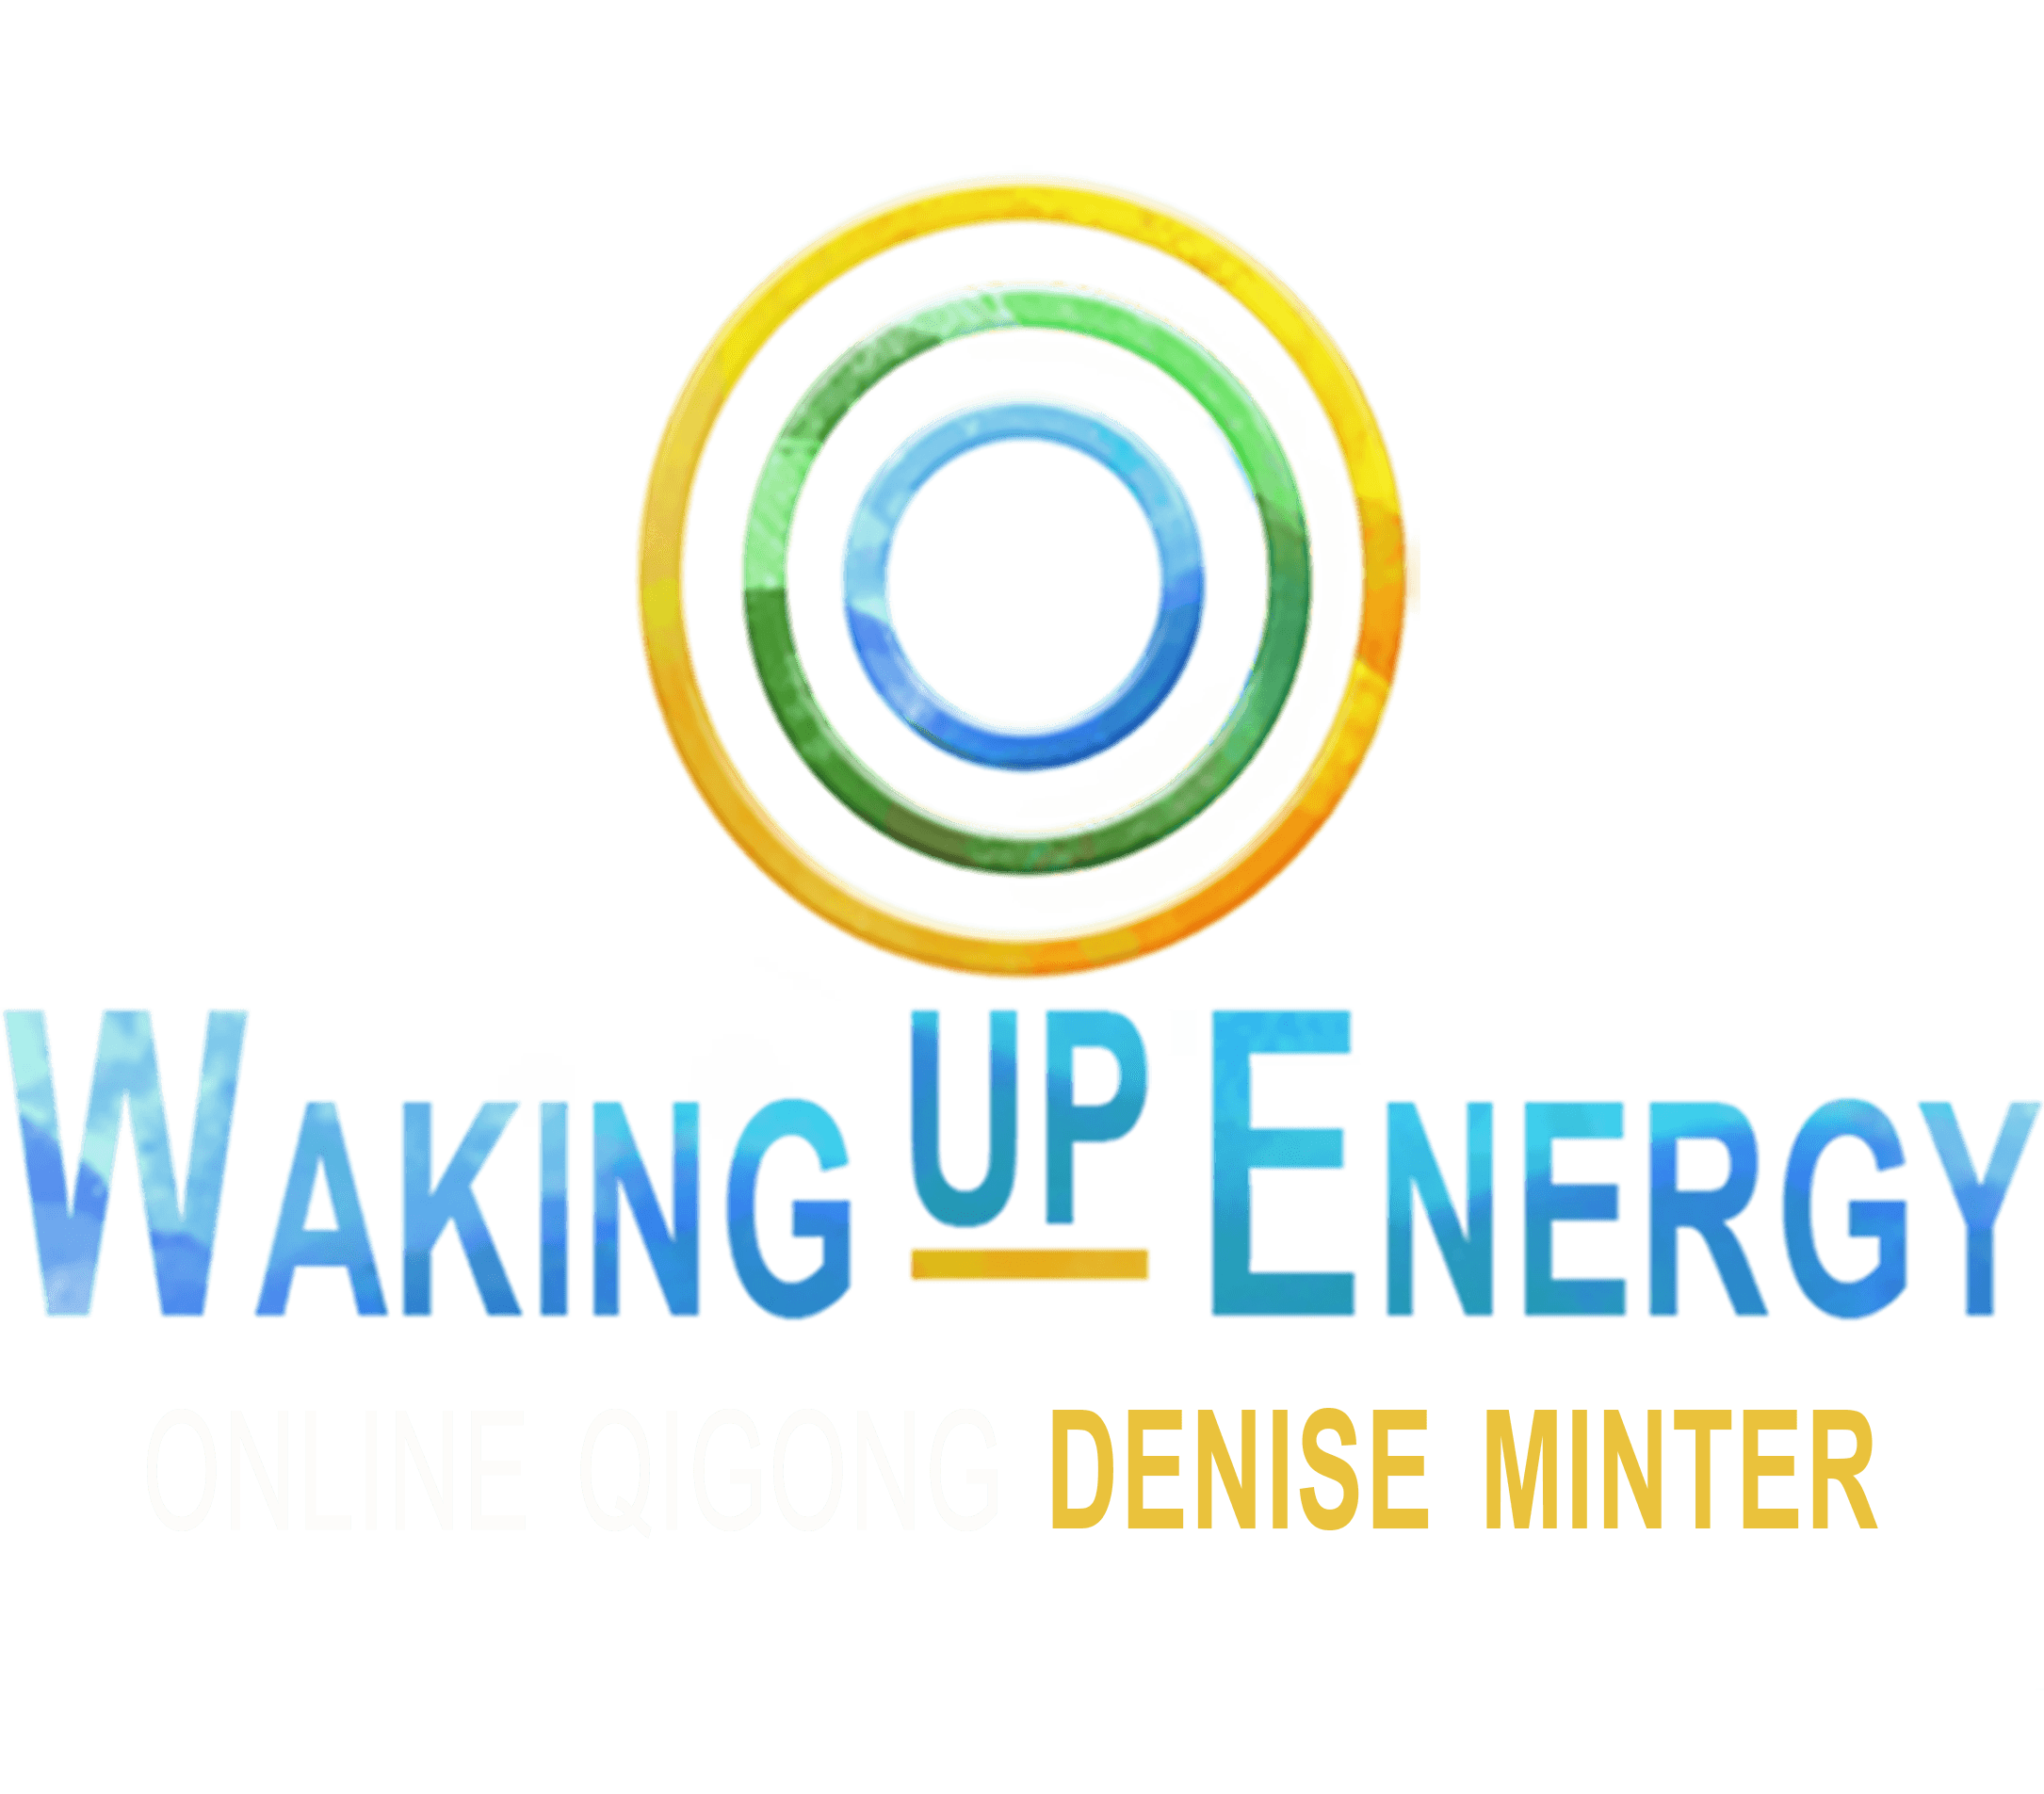 Waking Up Energy Qigong